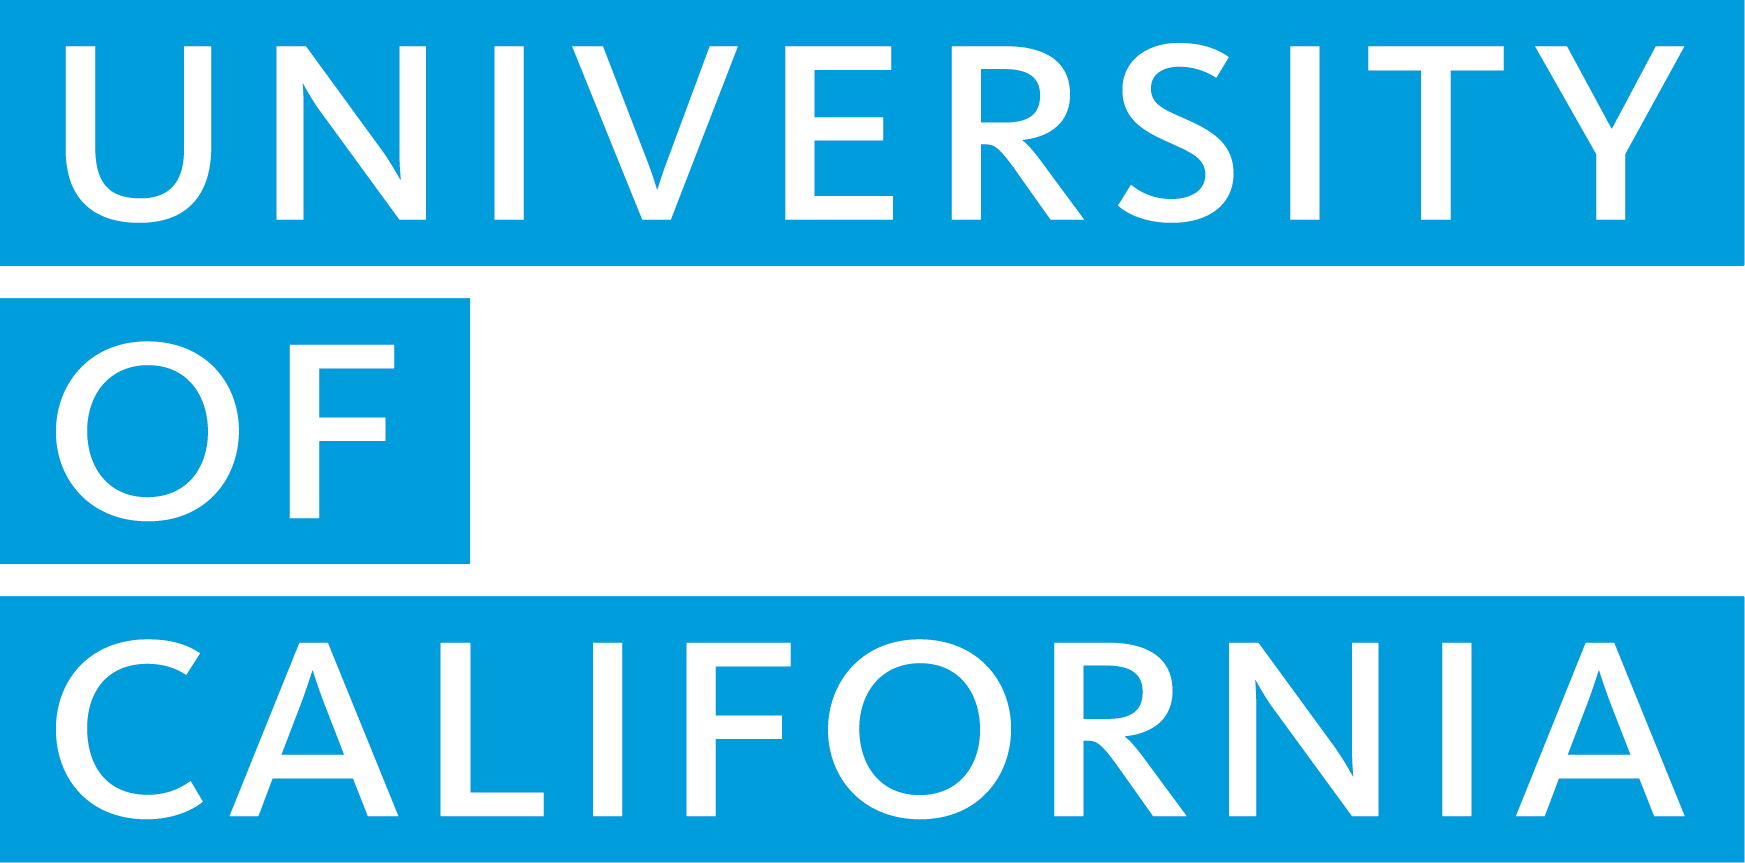 university-of-california-uc-wordmark-block-fill-blue